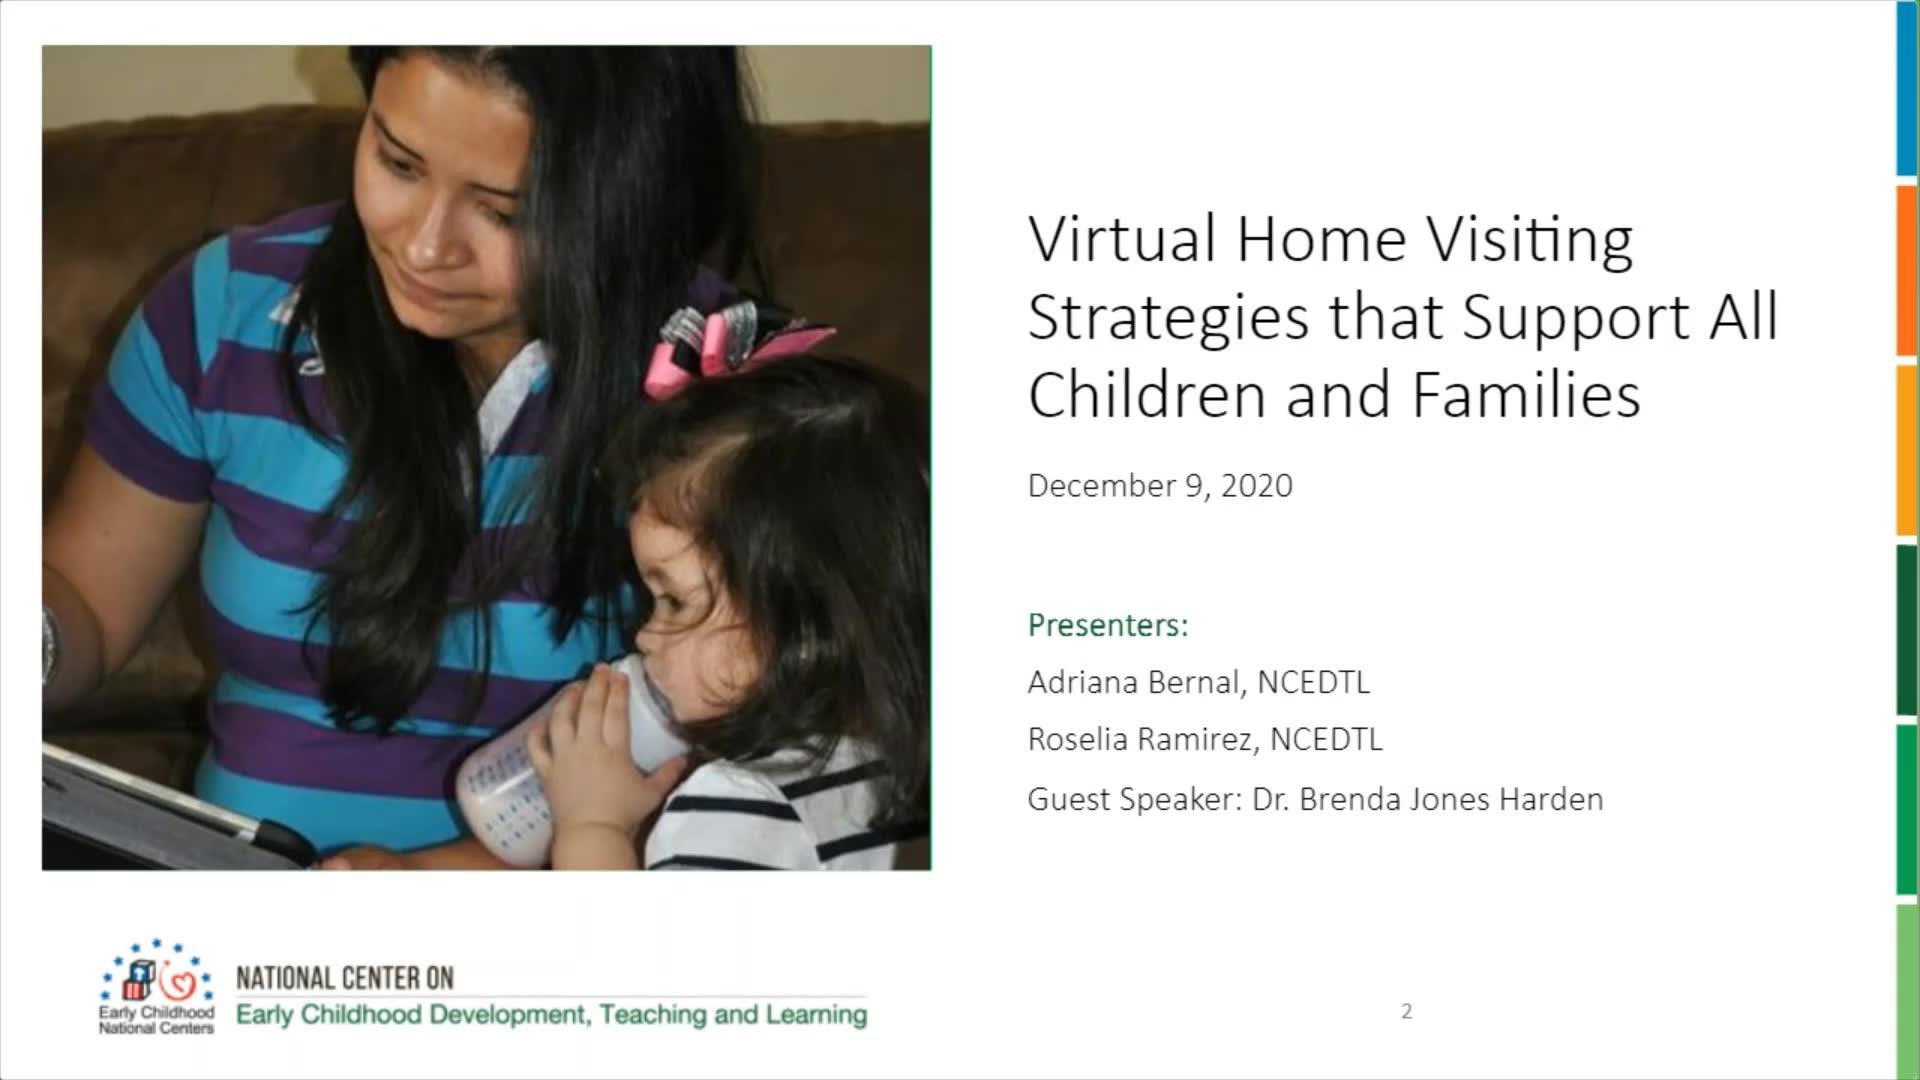 Virtual Home Visiting Strategies that Support All Children and Families